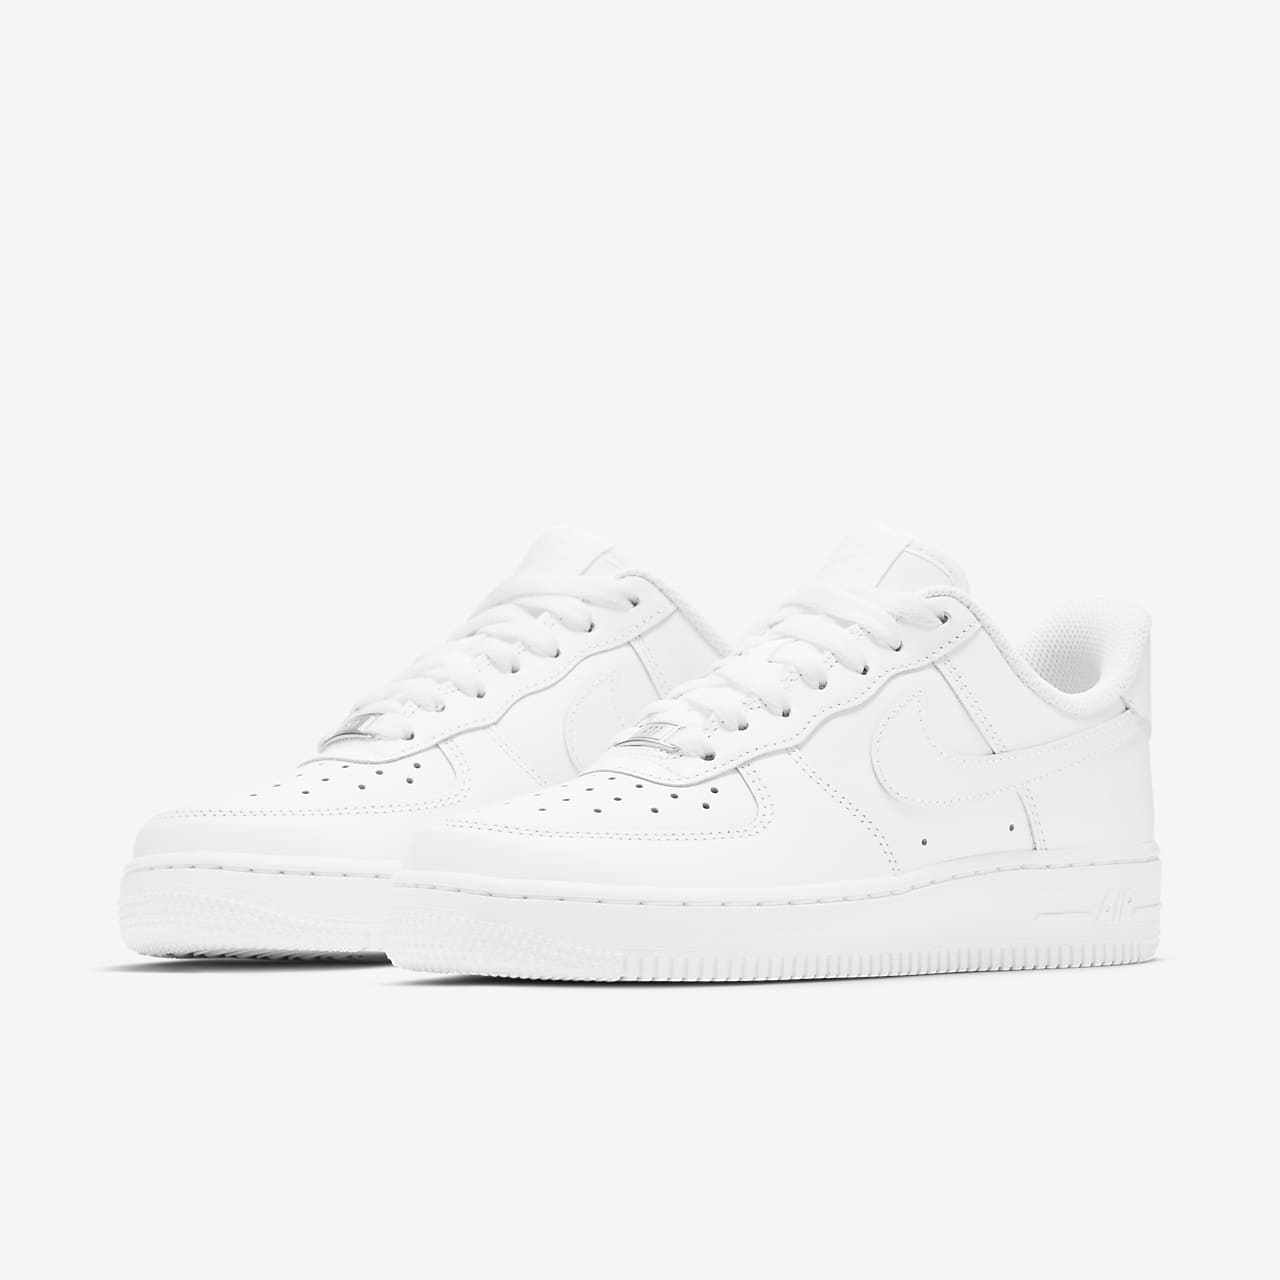 womens nike air force 1 '07 shoes size